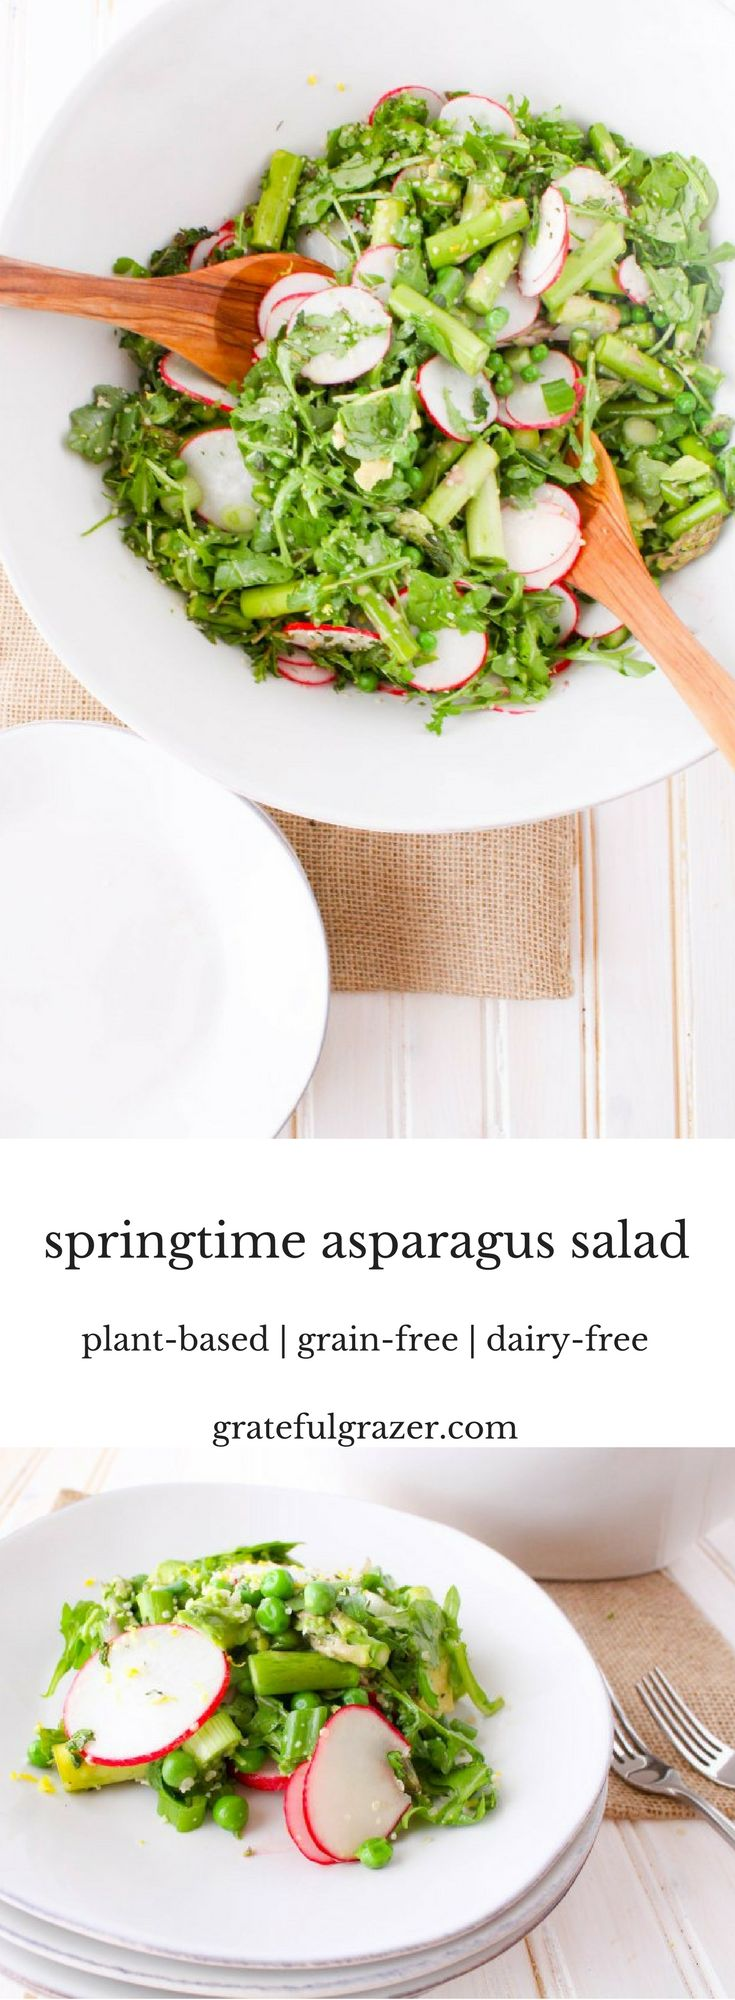 Celebrate spring with a light and refreshing springtime asparagus salad with lemon hemp seed dressing.  This plant-based side salad is also grain-free and dairy-free. via @gratefulgrazer